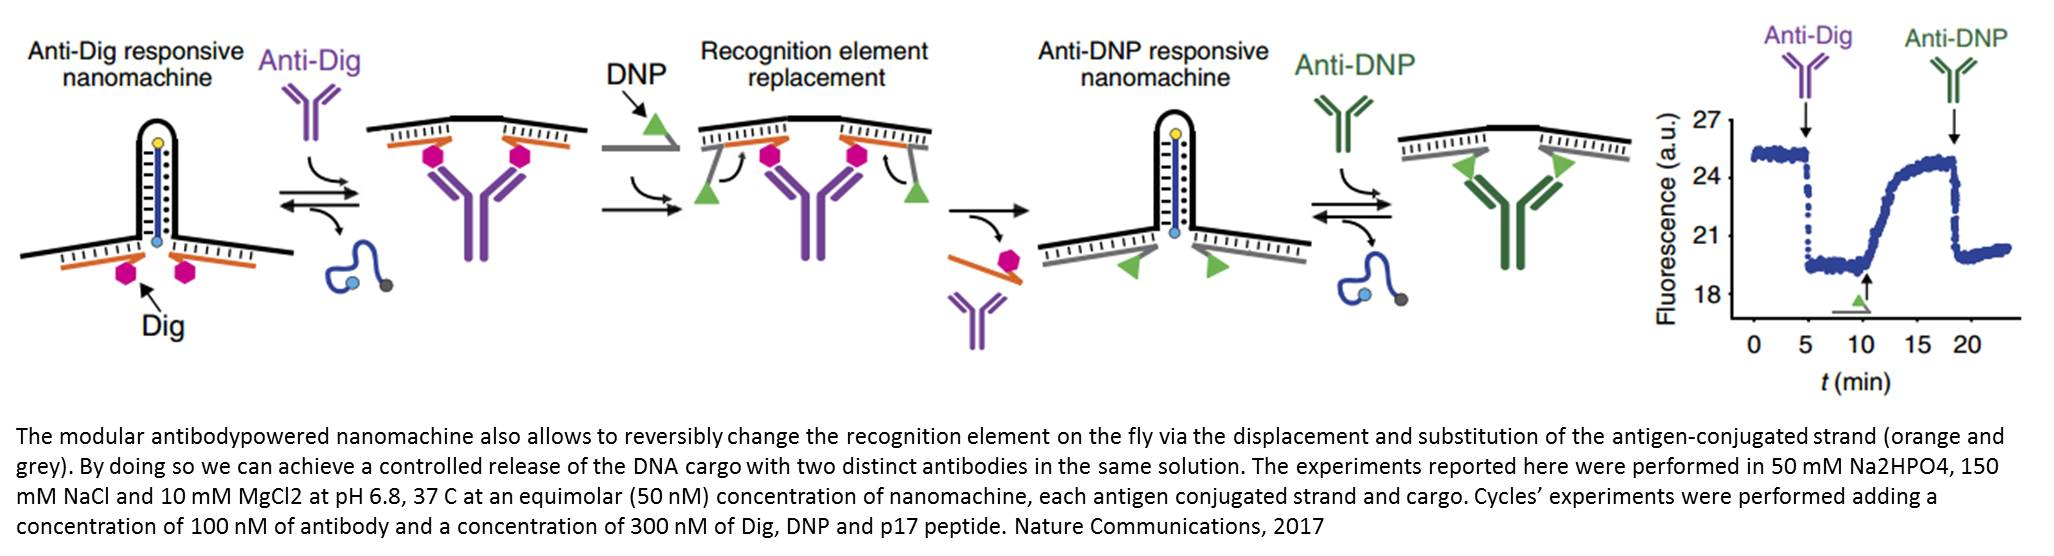 Antibody-powered nucleic acid release using a DNA-based nanomachine